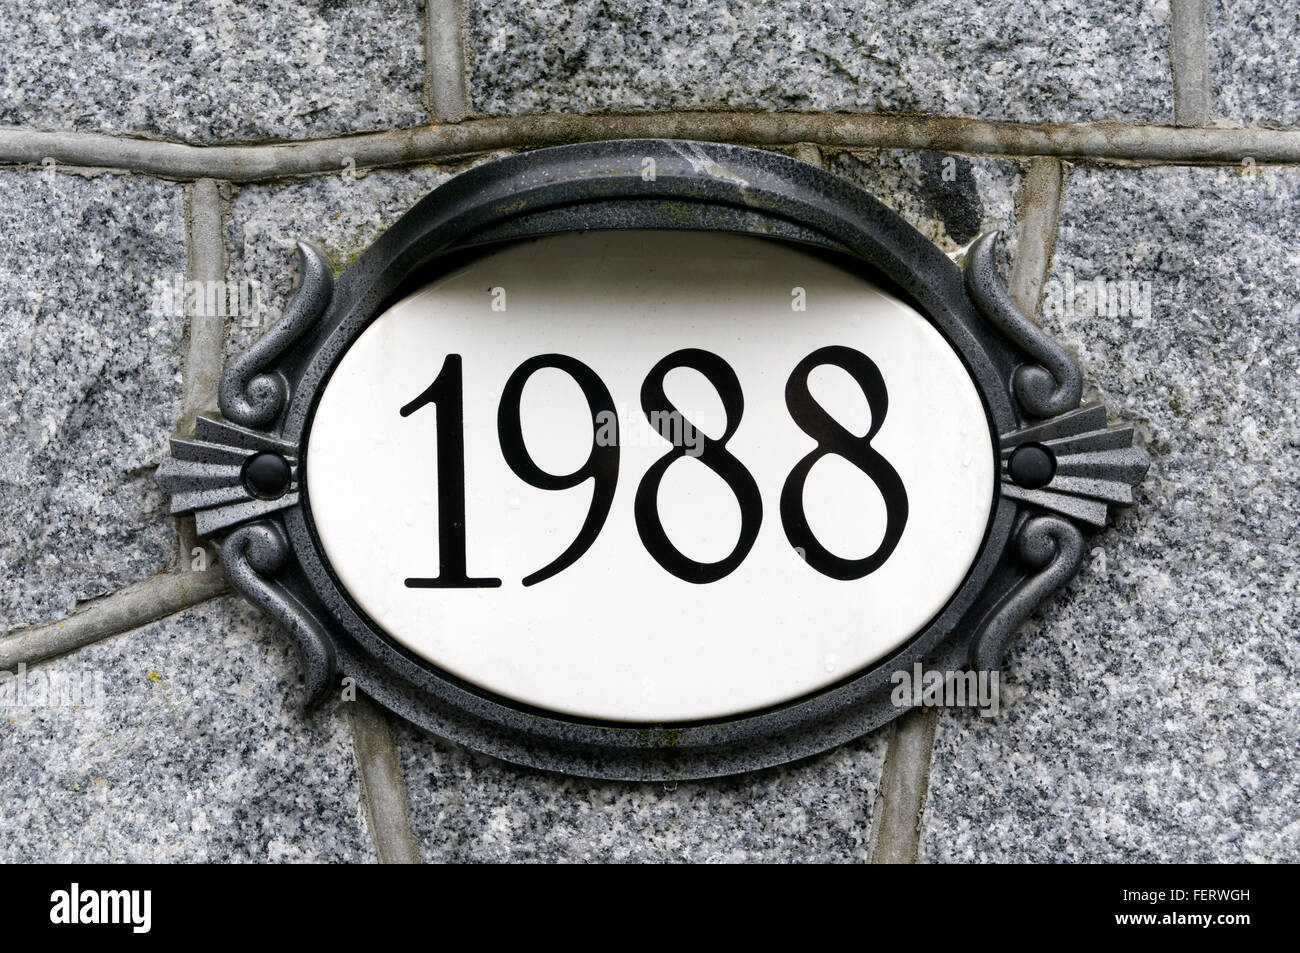 1988 house number on ornate oval plaque - Stock Image